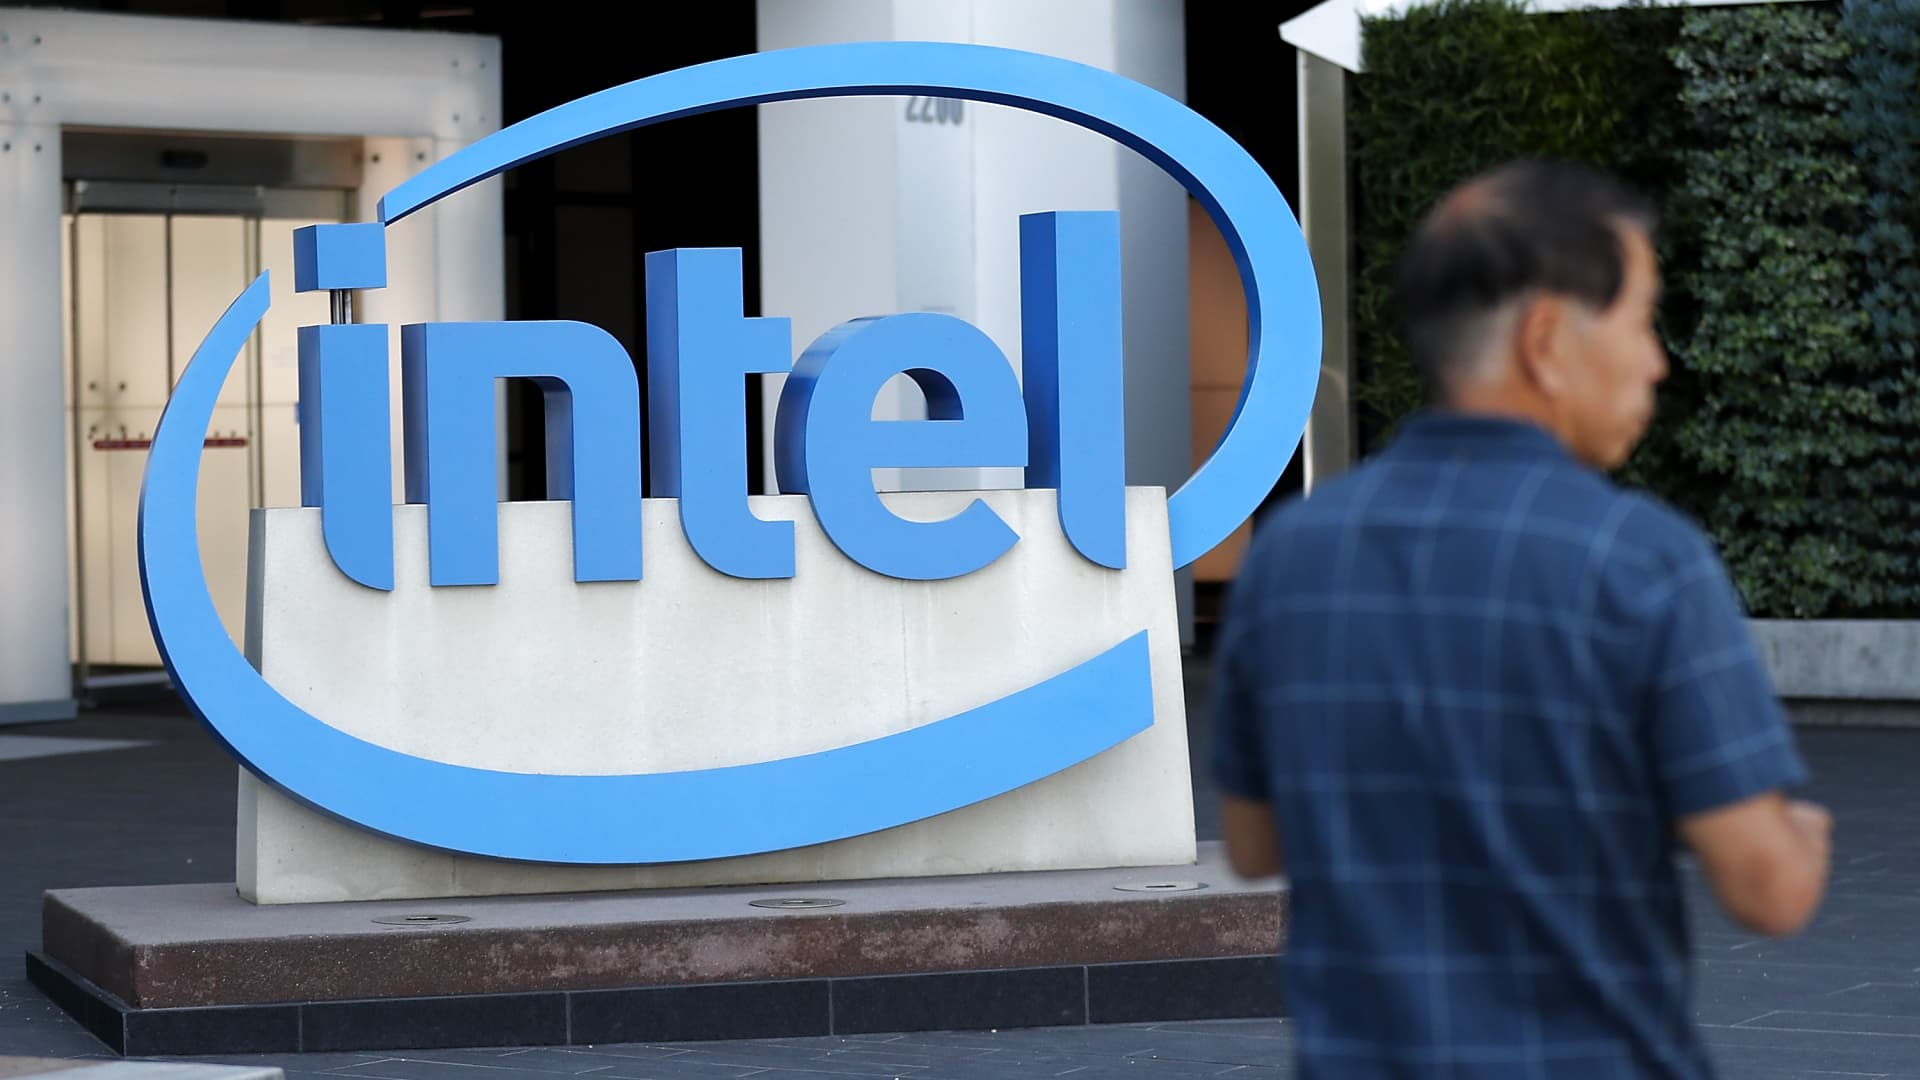 The Intel logo is displayed outside of the Intel headquarters in Santa Clara, Calif.